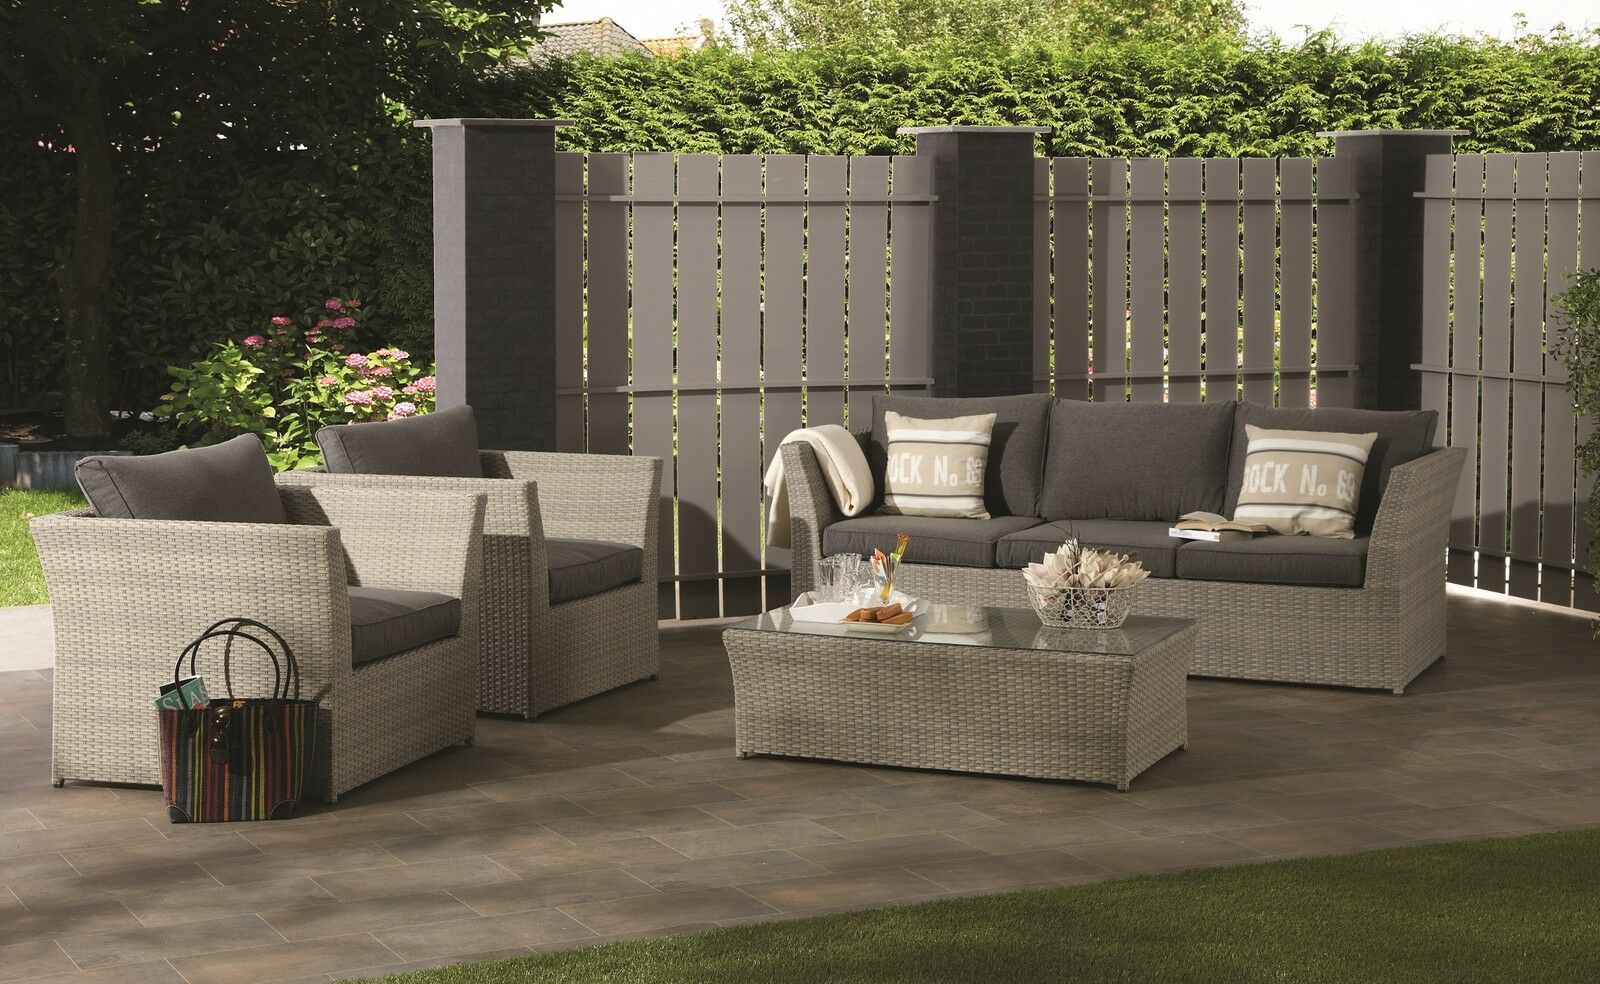 xl polyrattan lounge set tunis sitzgruppe gartenm bel garnitur garten alu gruppe eur 899 00. Black Bedroom Furniture Sets. Home Design Ideas